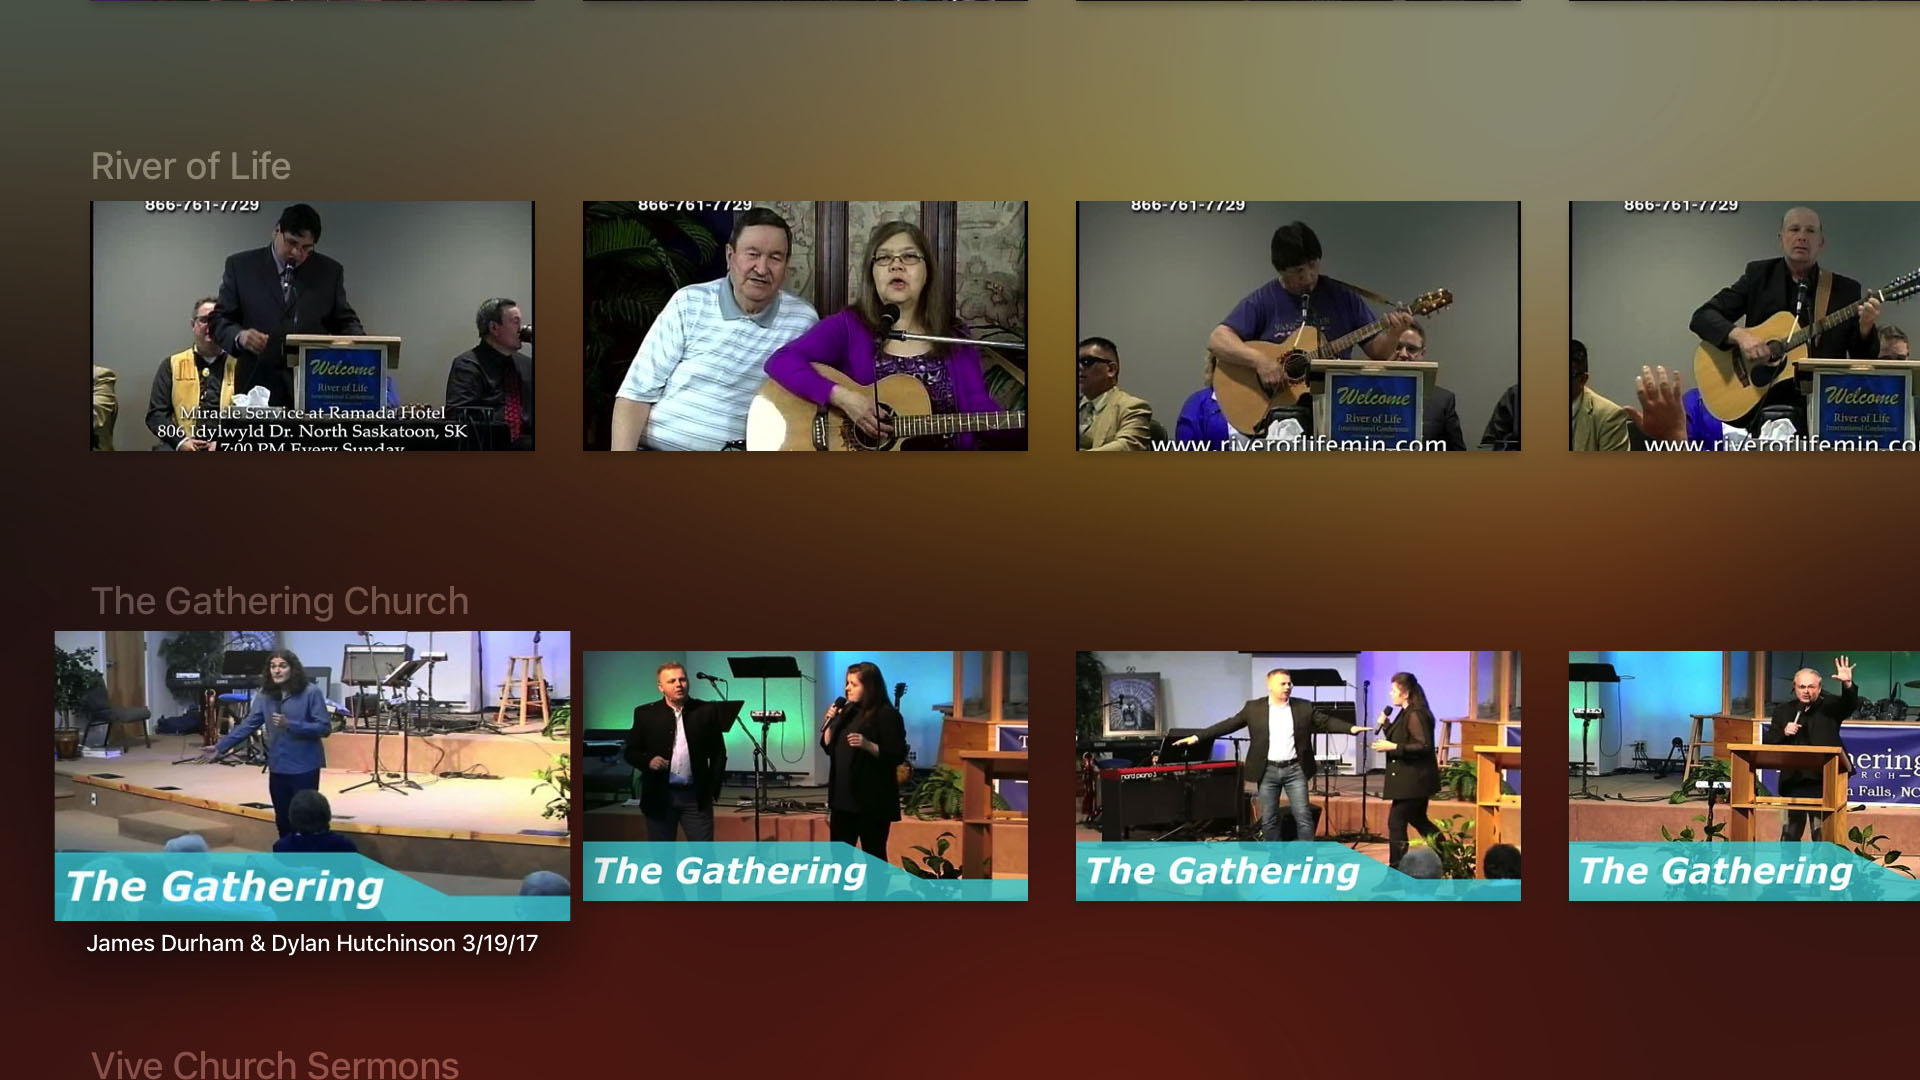 The Sermon Channel Screenshot 002